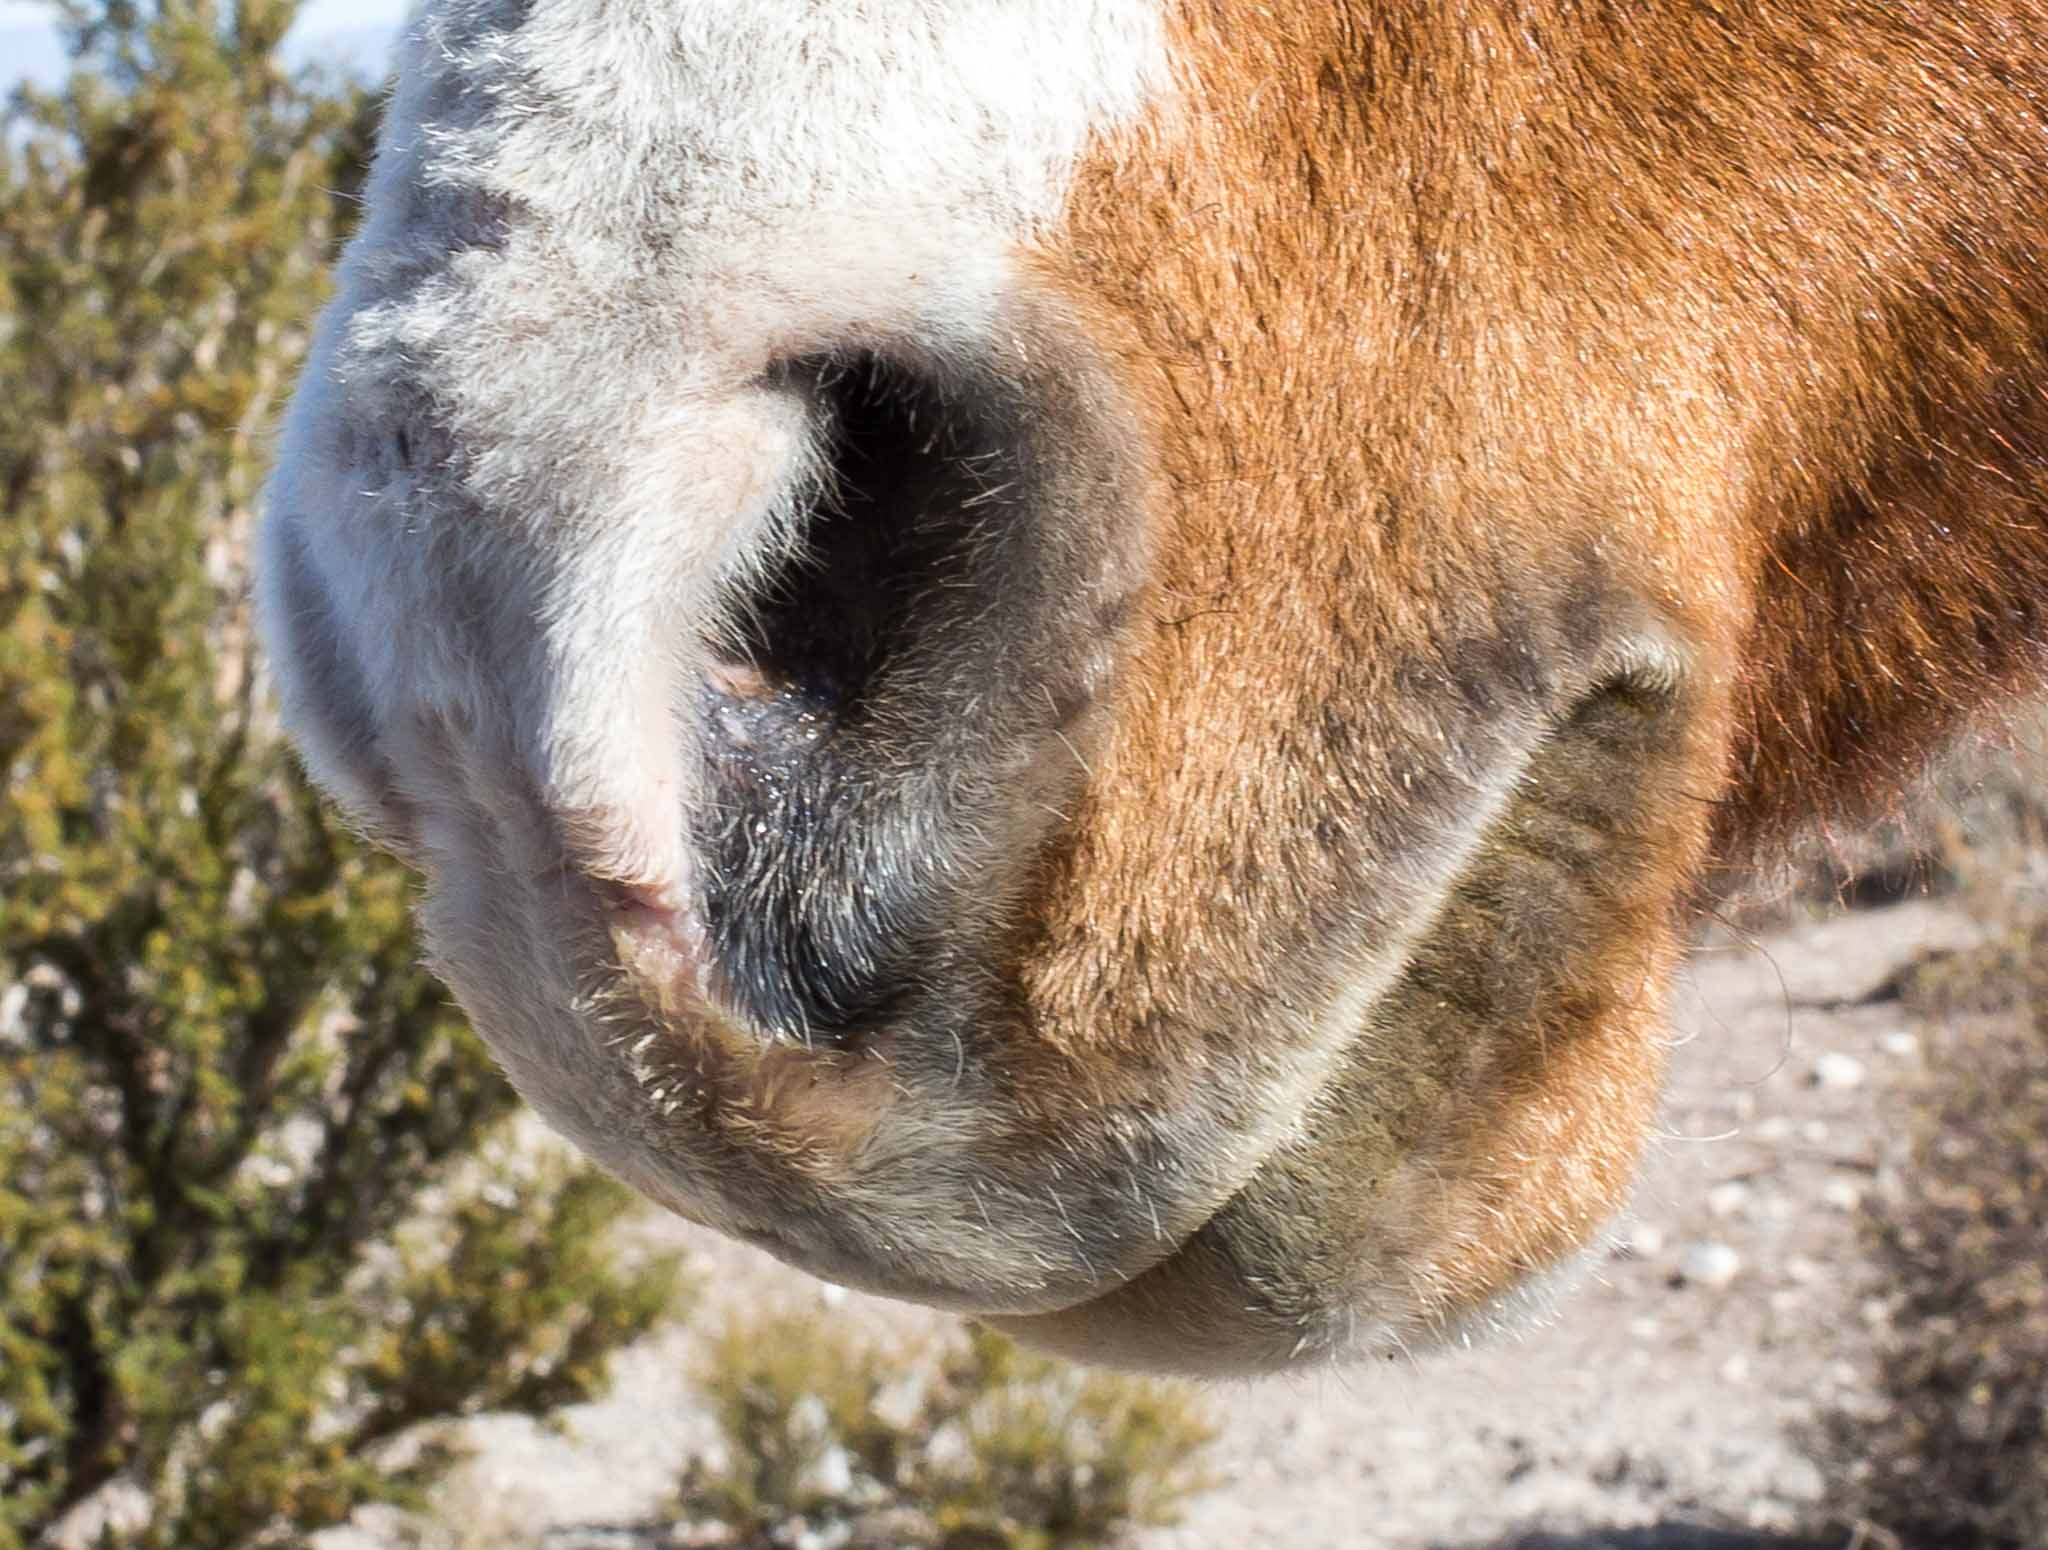 Horse nose, closeup of wild horse at Cold Creek NV, October 22, 2014